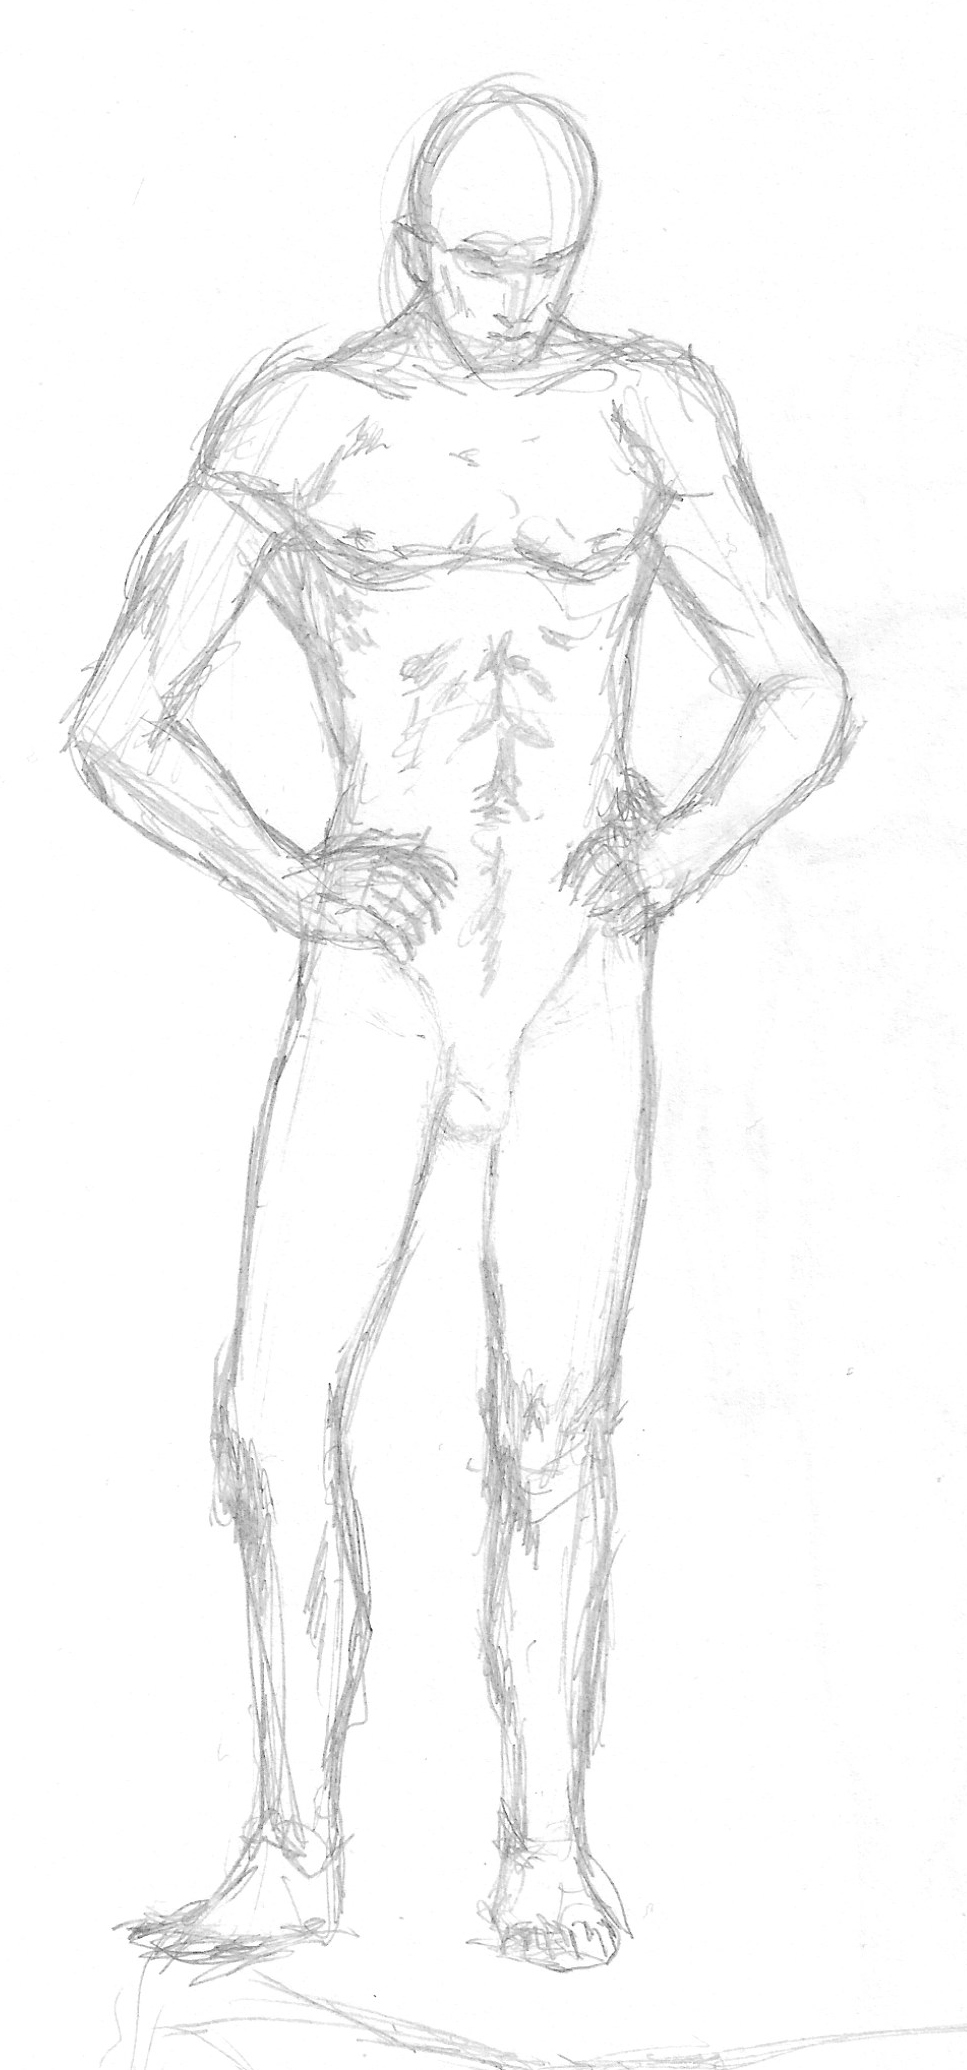 Standing man casual pose sketch by B4LD3R on DeviantArt